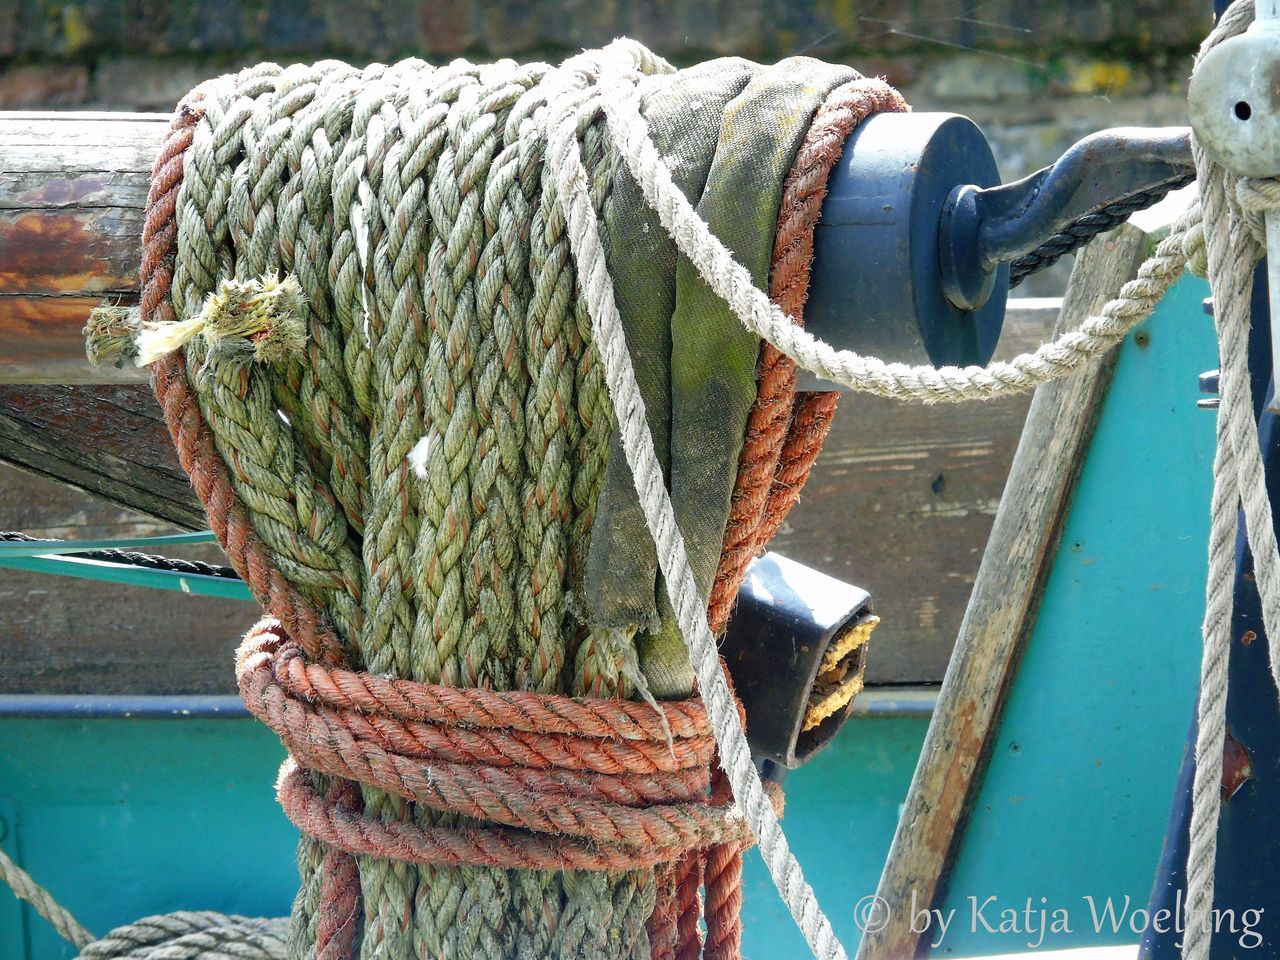 Boat Dock Caple Focus On Foreground Outdoors Part Of Rope Tied Up Wood - Material Wooden Post